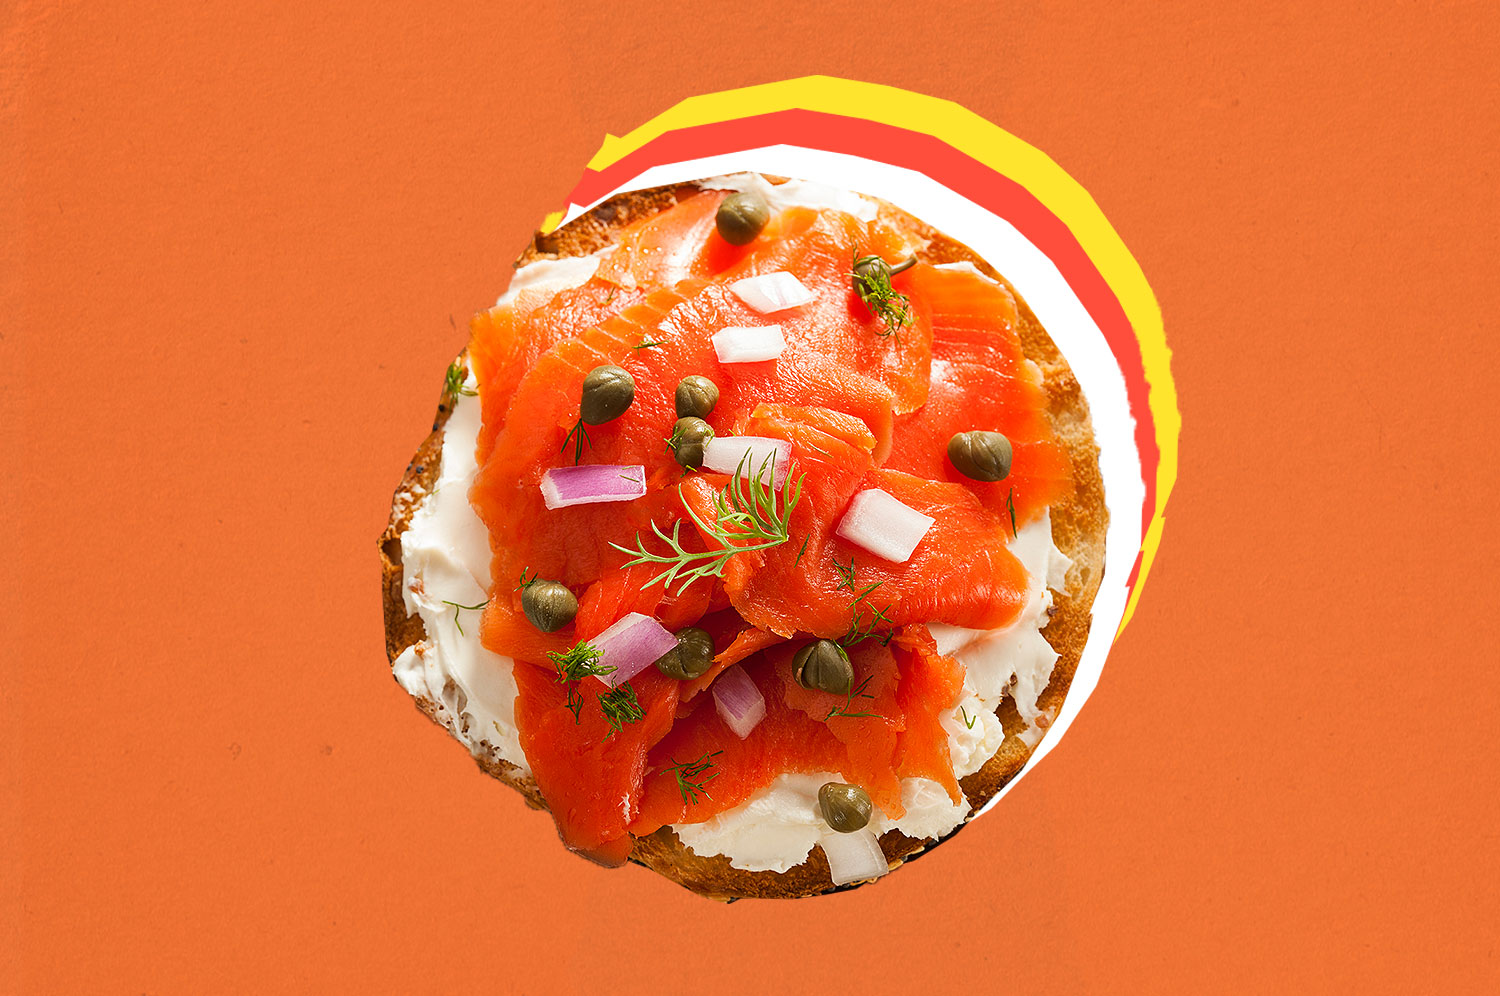 A bagel with lox and cream cheese